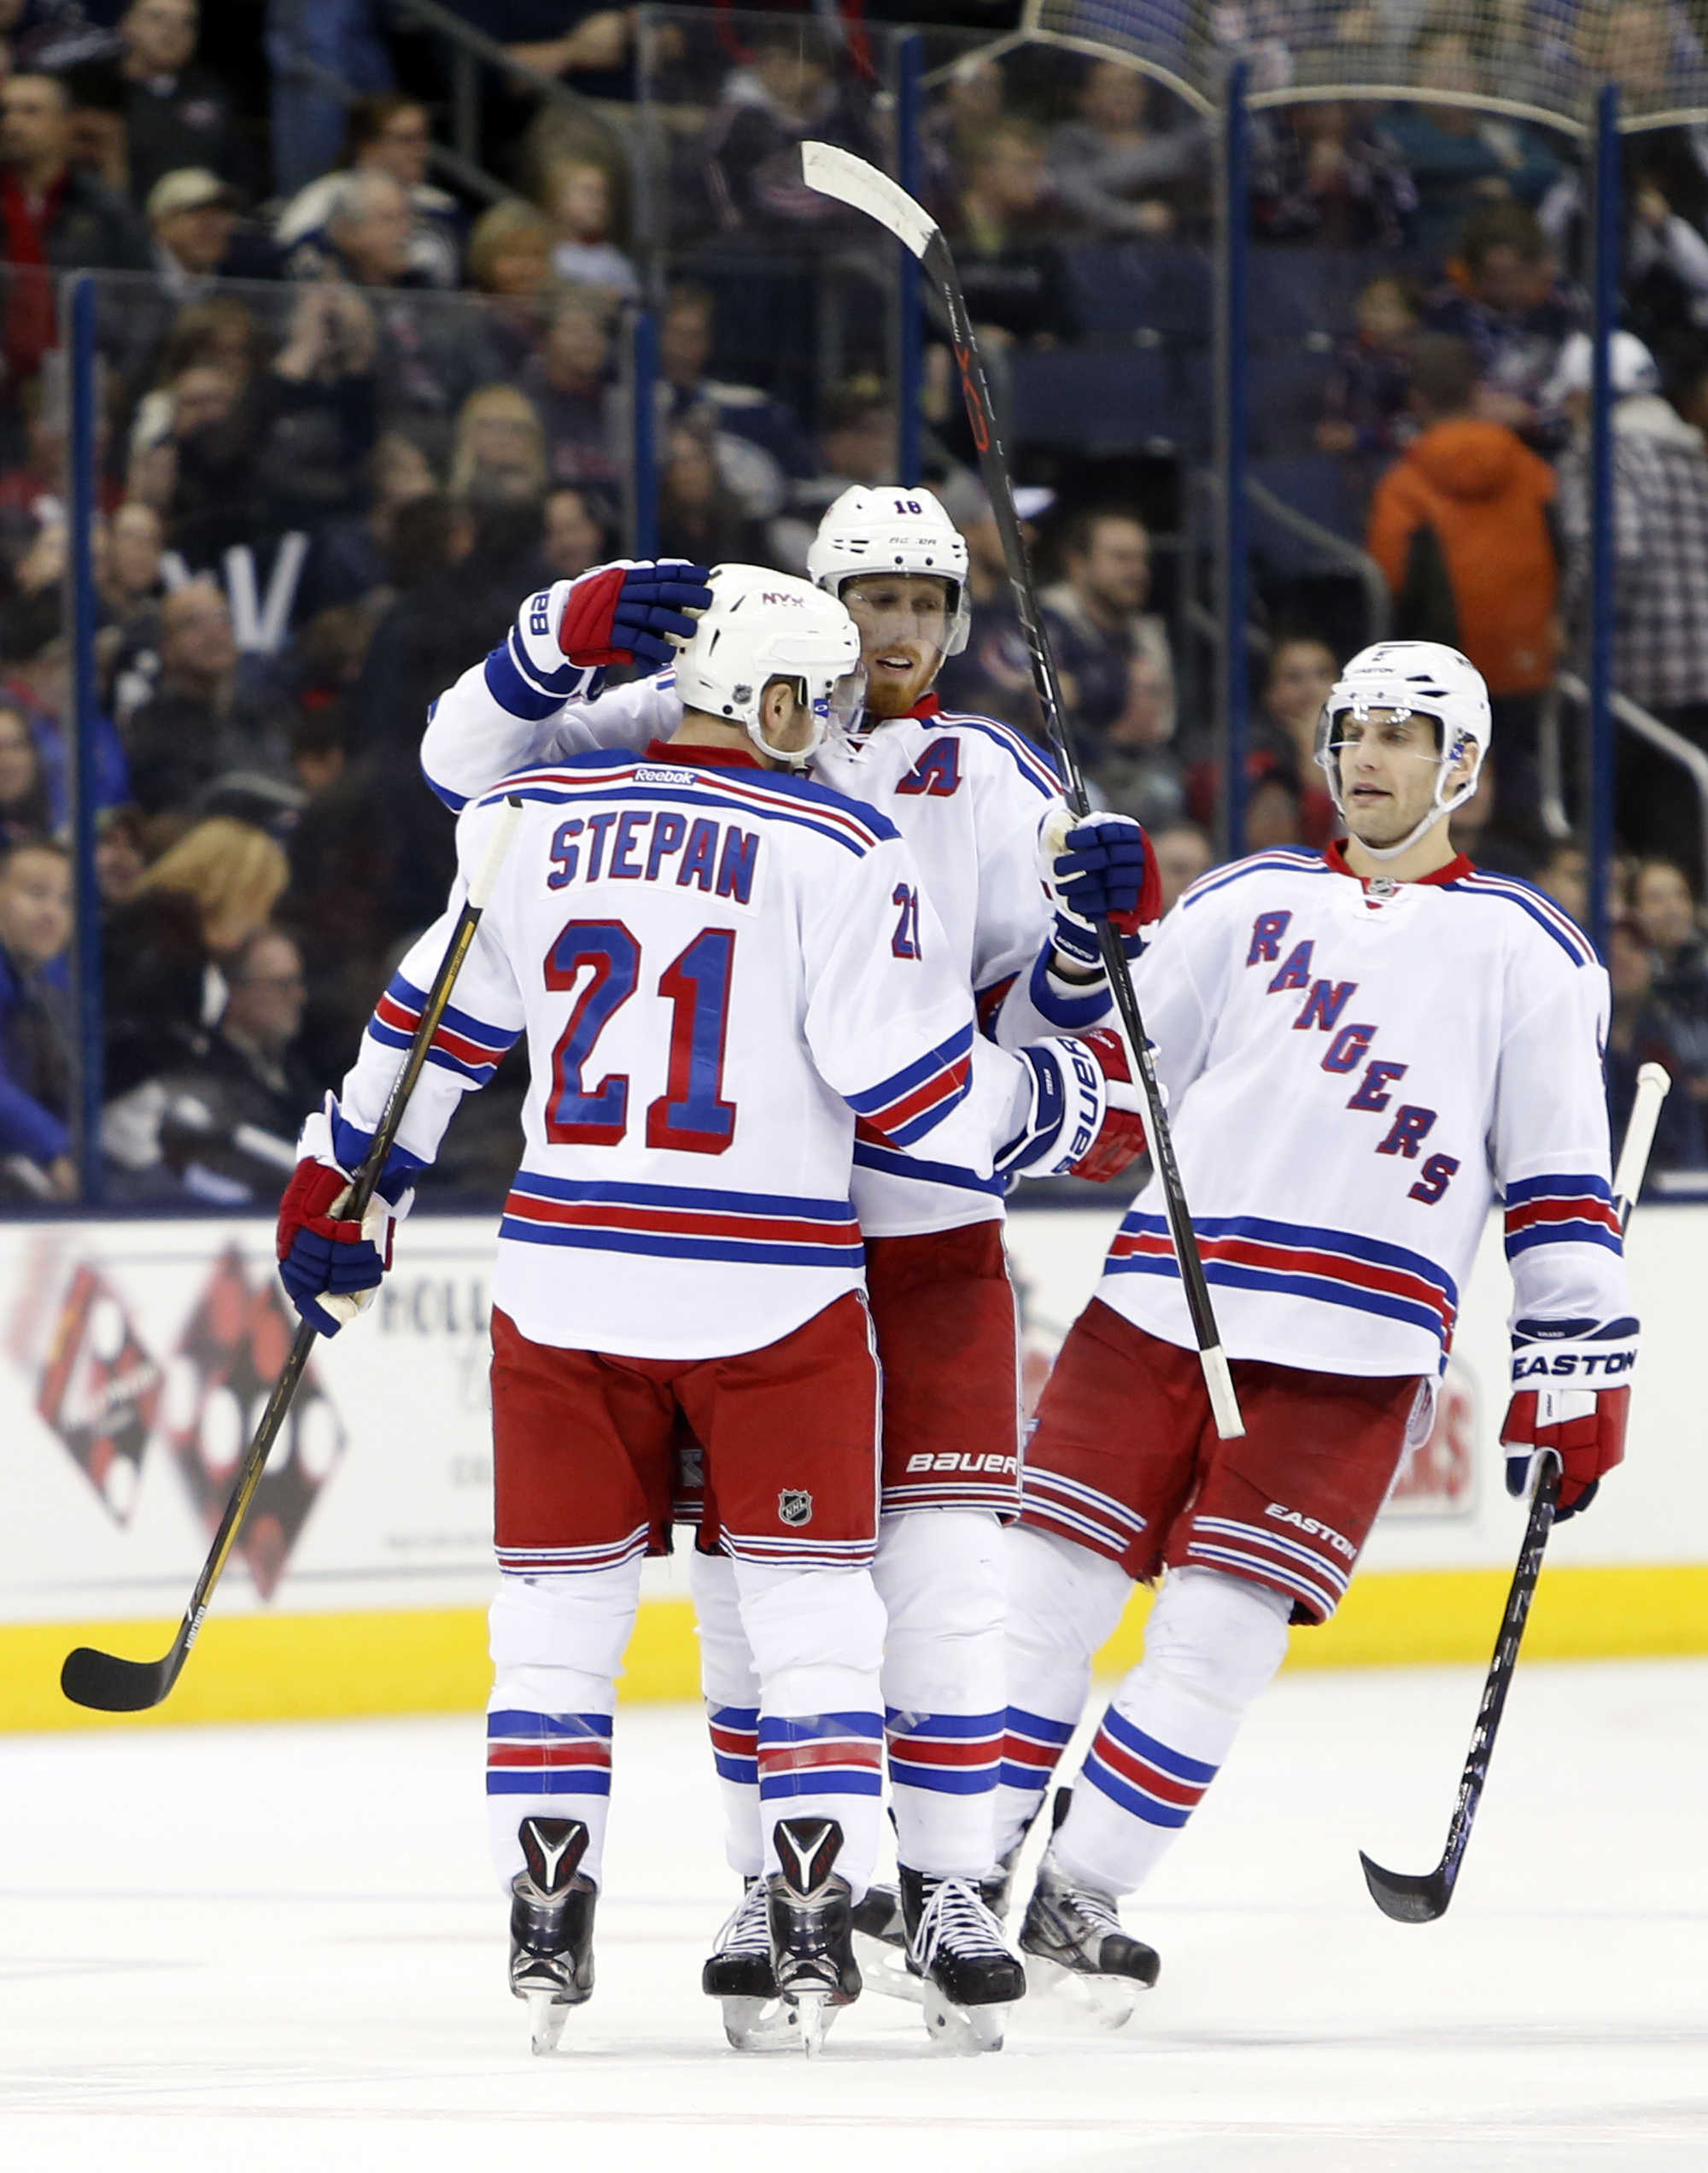 New York Rangers' Derek Stepan, left, is congratulated on his goal against the Columbus Blue Jackets by teammates Marc Staal, center, and Dan Girardi during the third period of an NHL hockey game Monday, April 4, 2016, in Columbus, Ohio. The Rangers beat